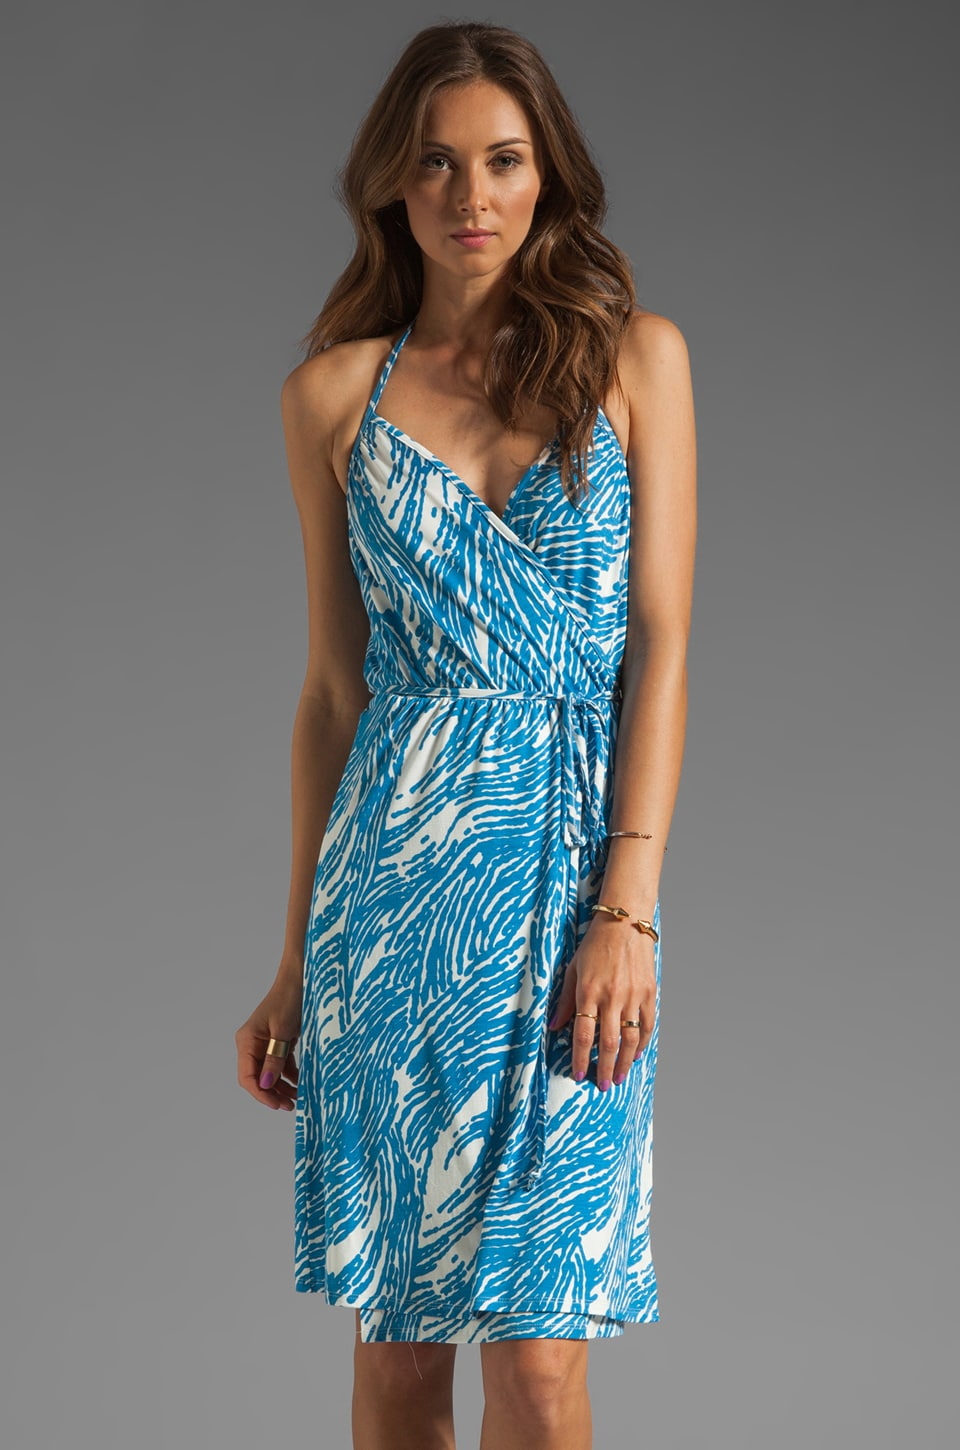 Rachel Pally Maco Halter Dress in Mykonos Current